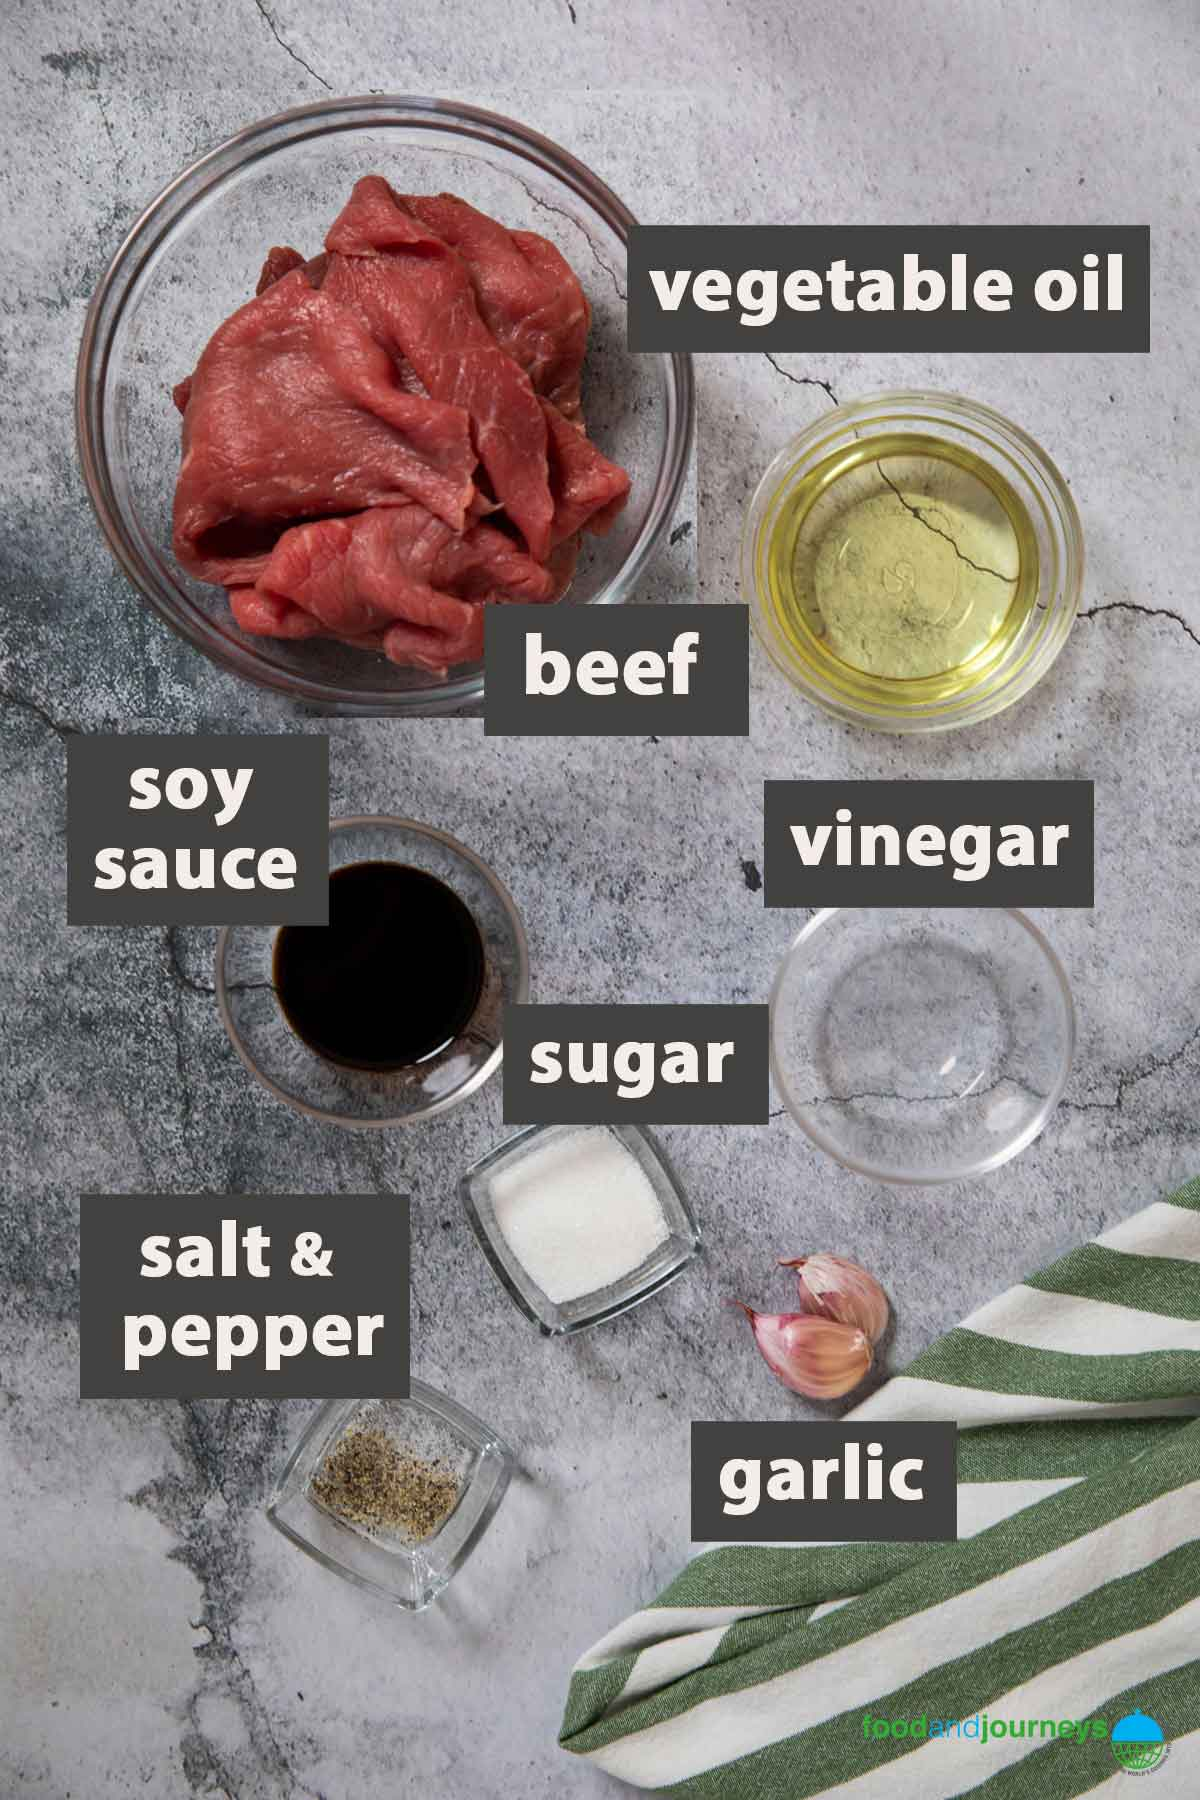 All the ingredients you need to prepare beef tapa at home.